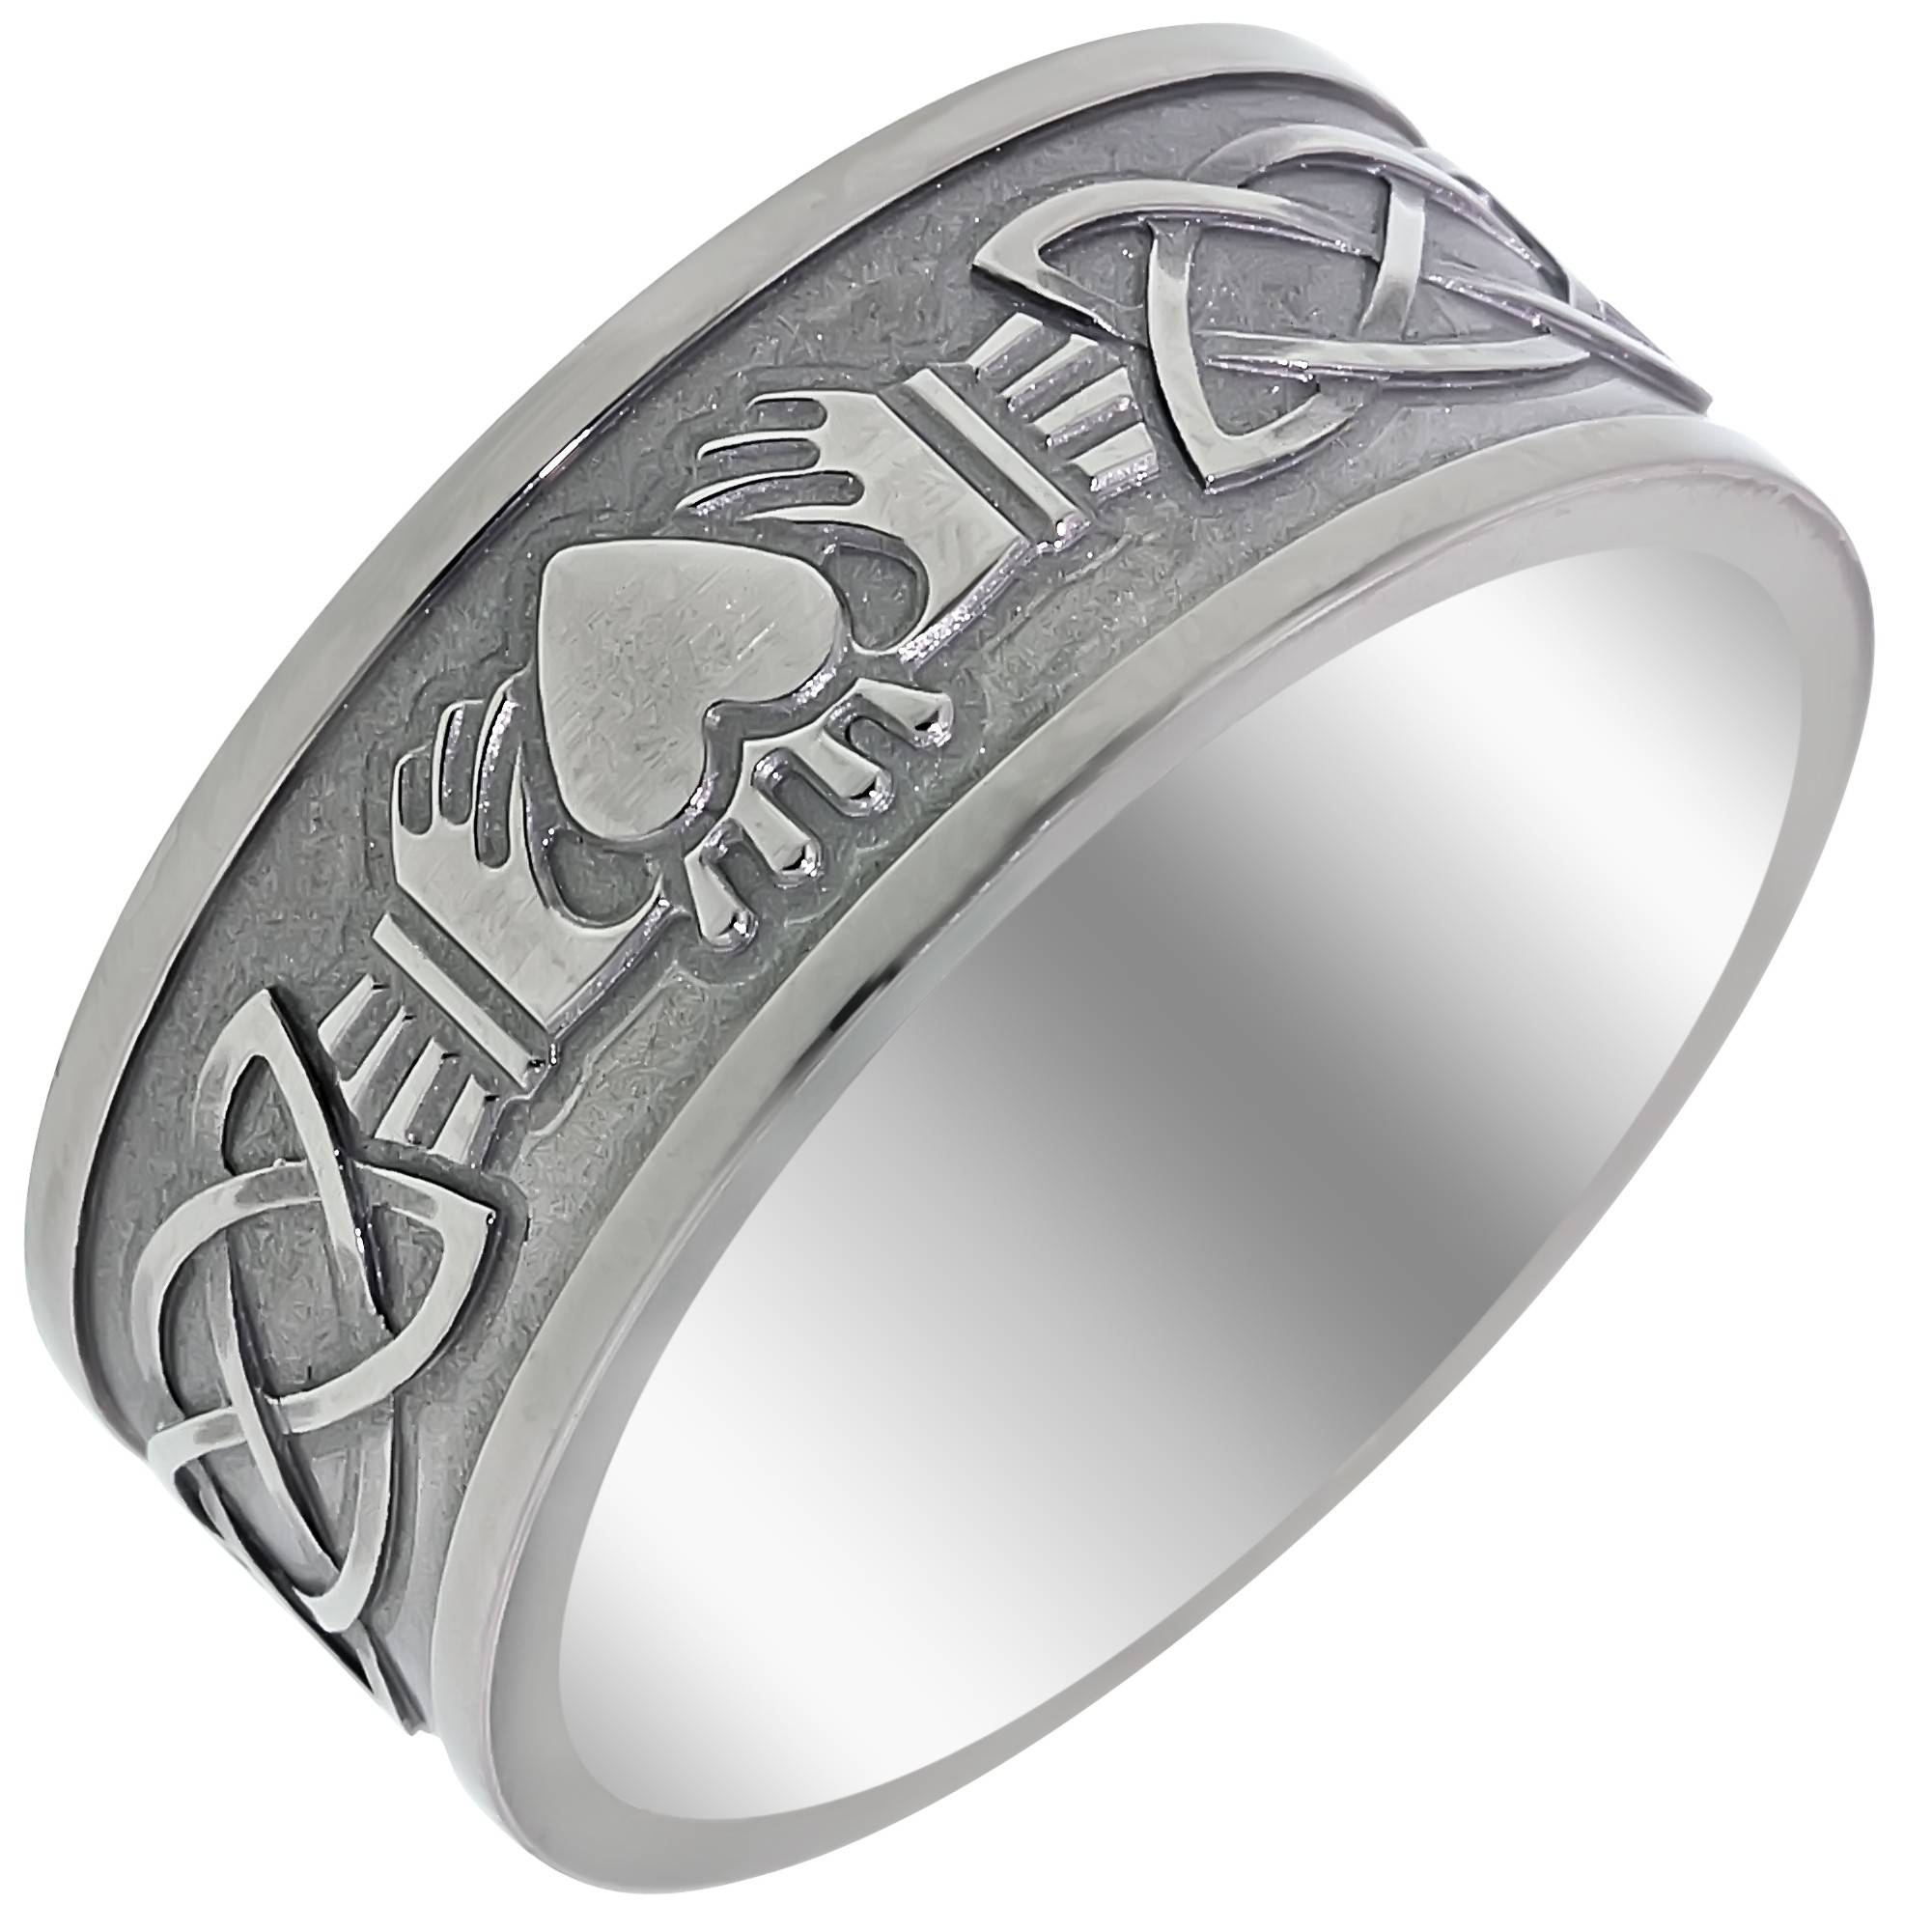 Wedding Rings : Claddagh Wedding Band White Gold Irish Wedding Throughout Most Current Claddagh Irish Wedding Bands (View 10 of 15)